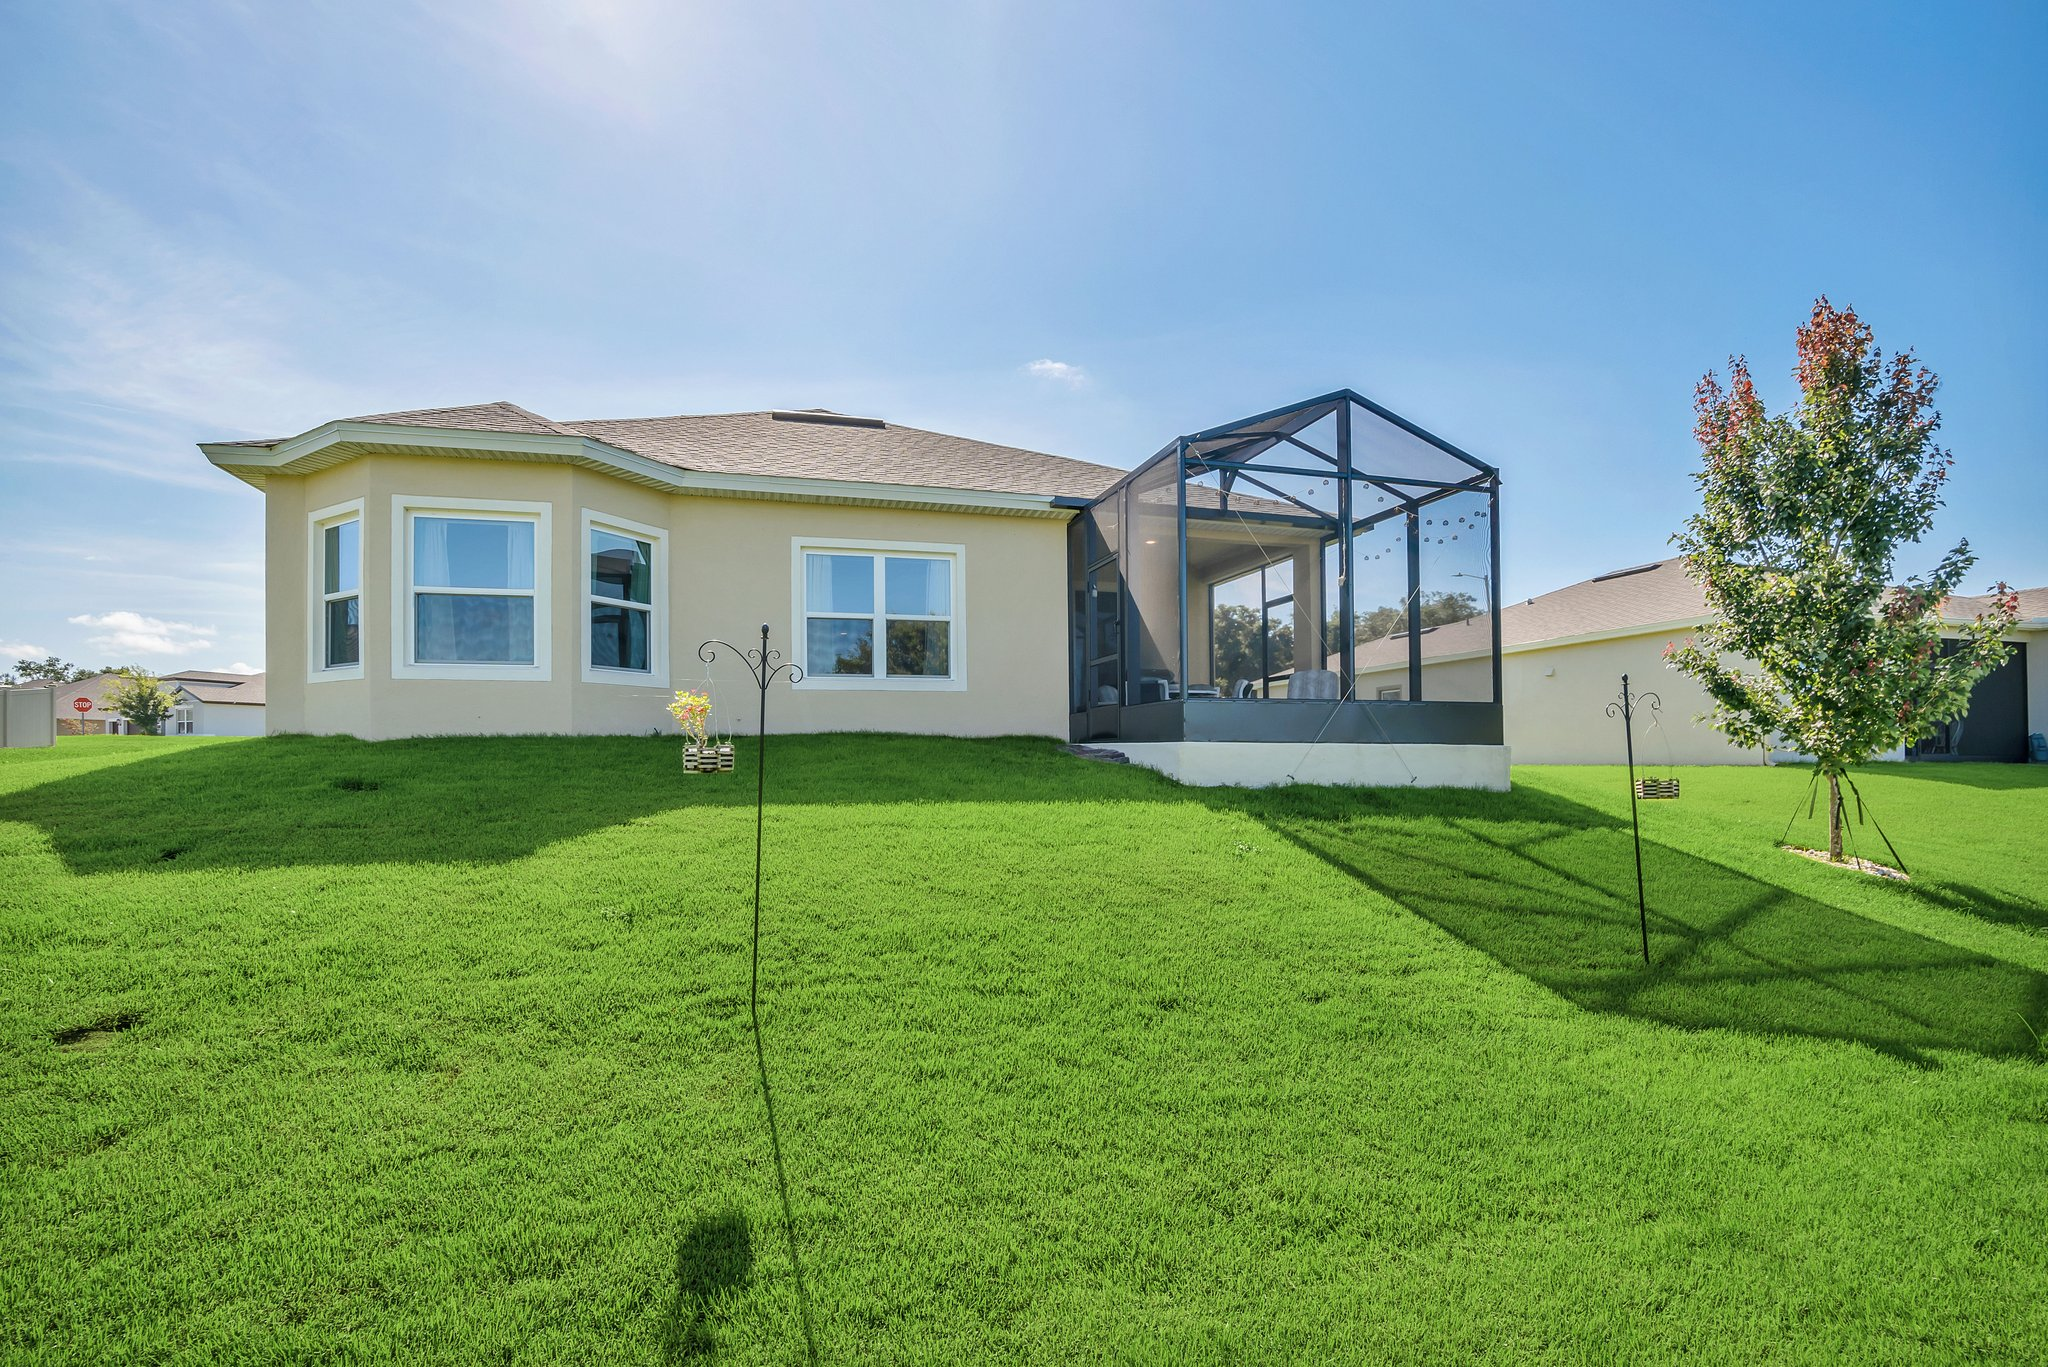 531 Bellissimo Pl, Howey-In-The-Hills, FL 34737, USA Photo 26